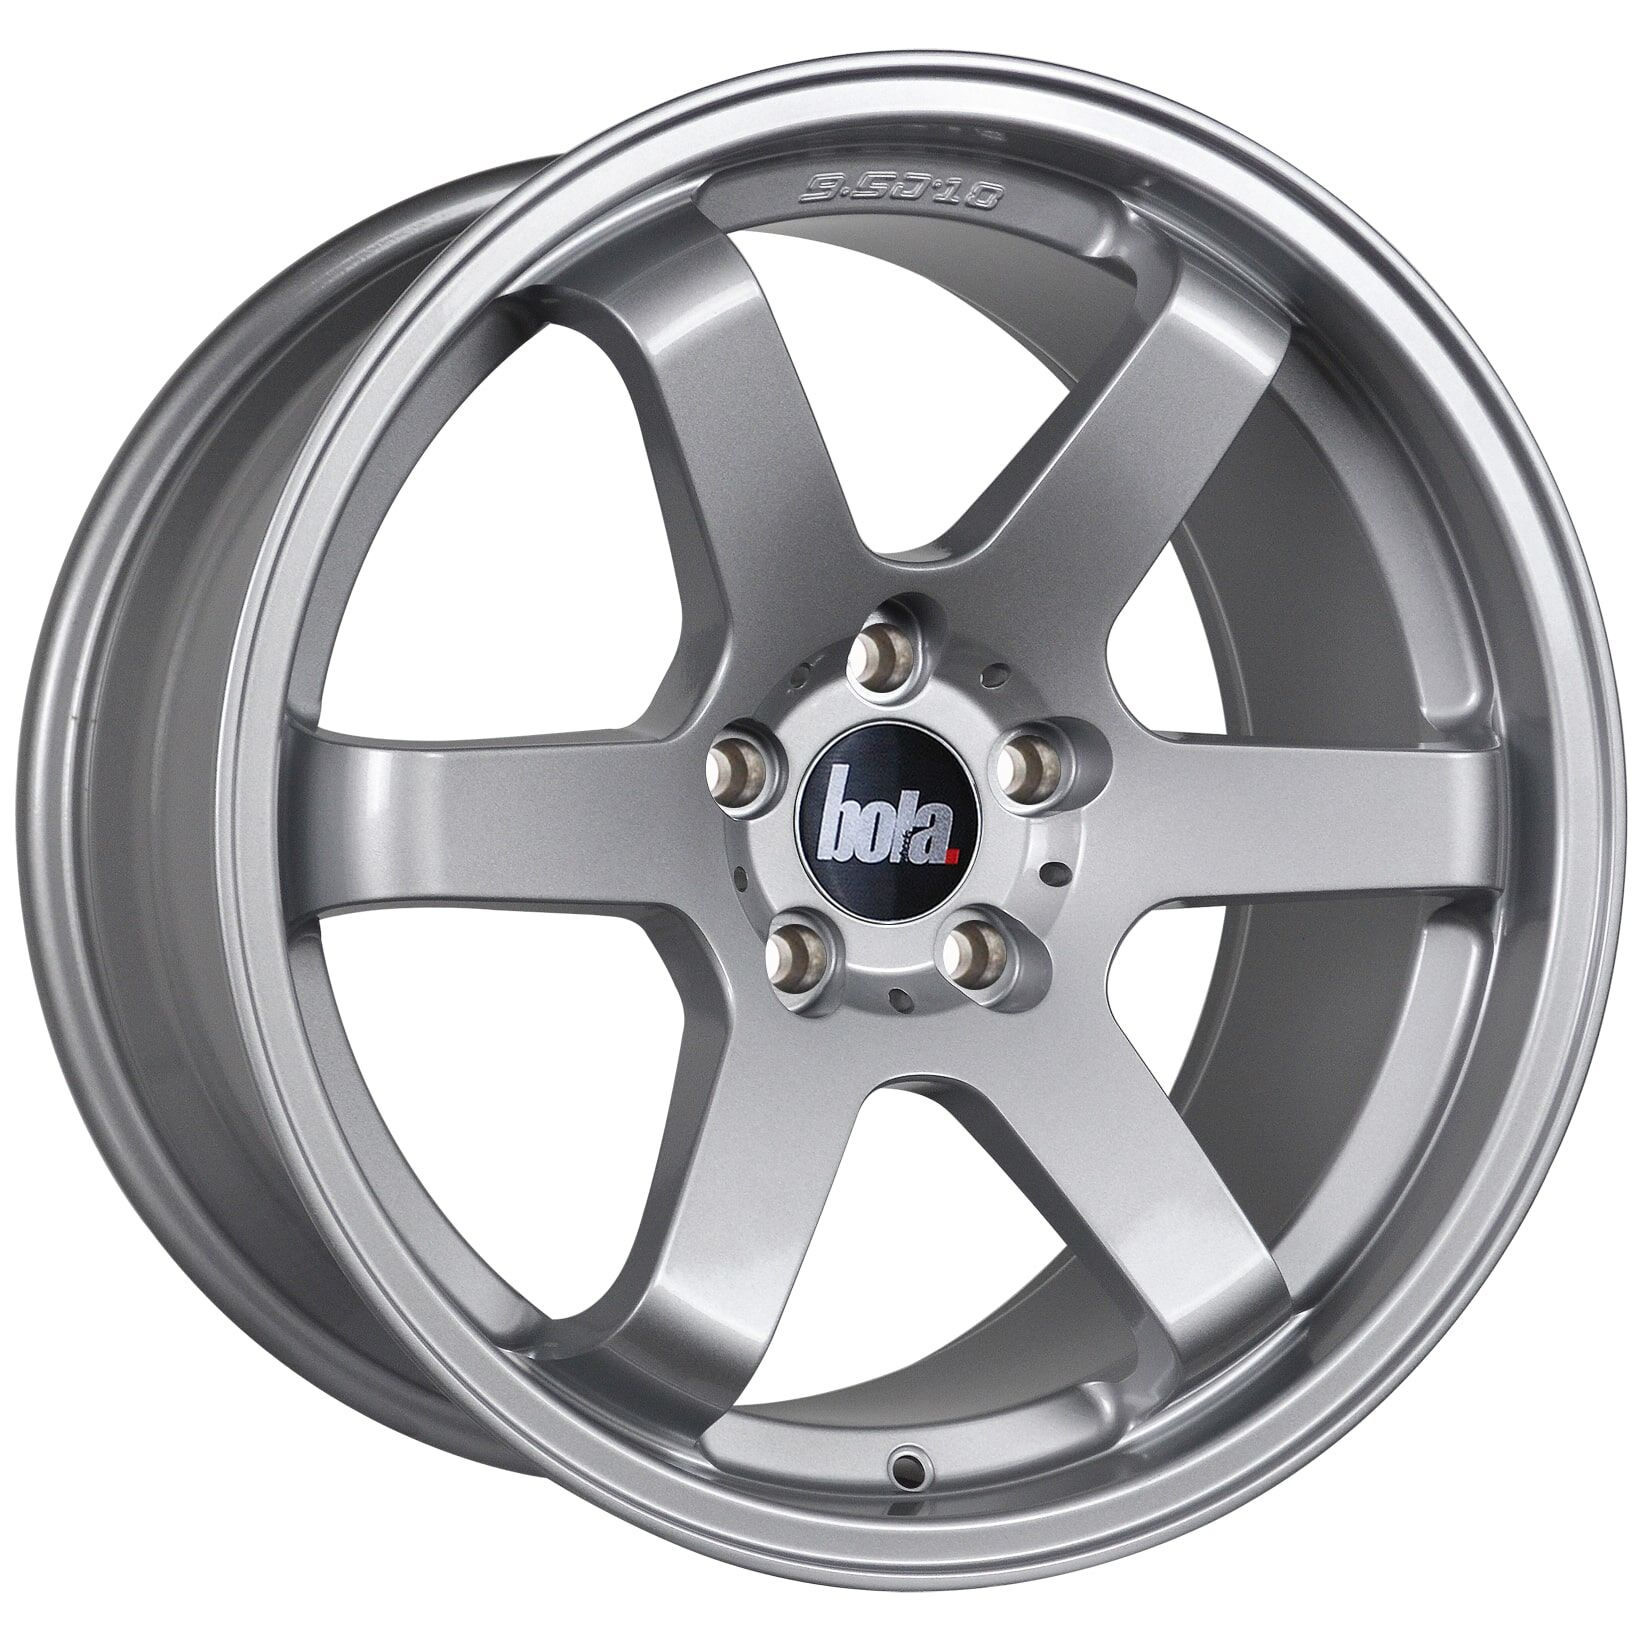 "18"" BOLA B1 Wheels - Silver - VW / Audi / Mercedes - 5x112"